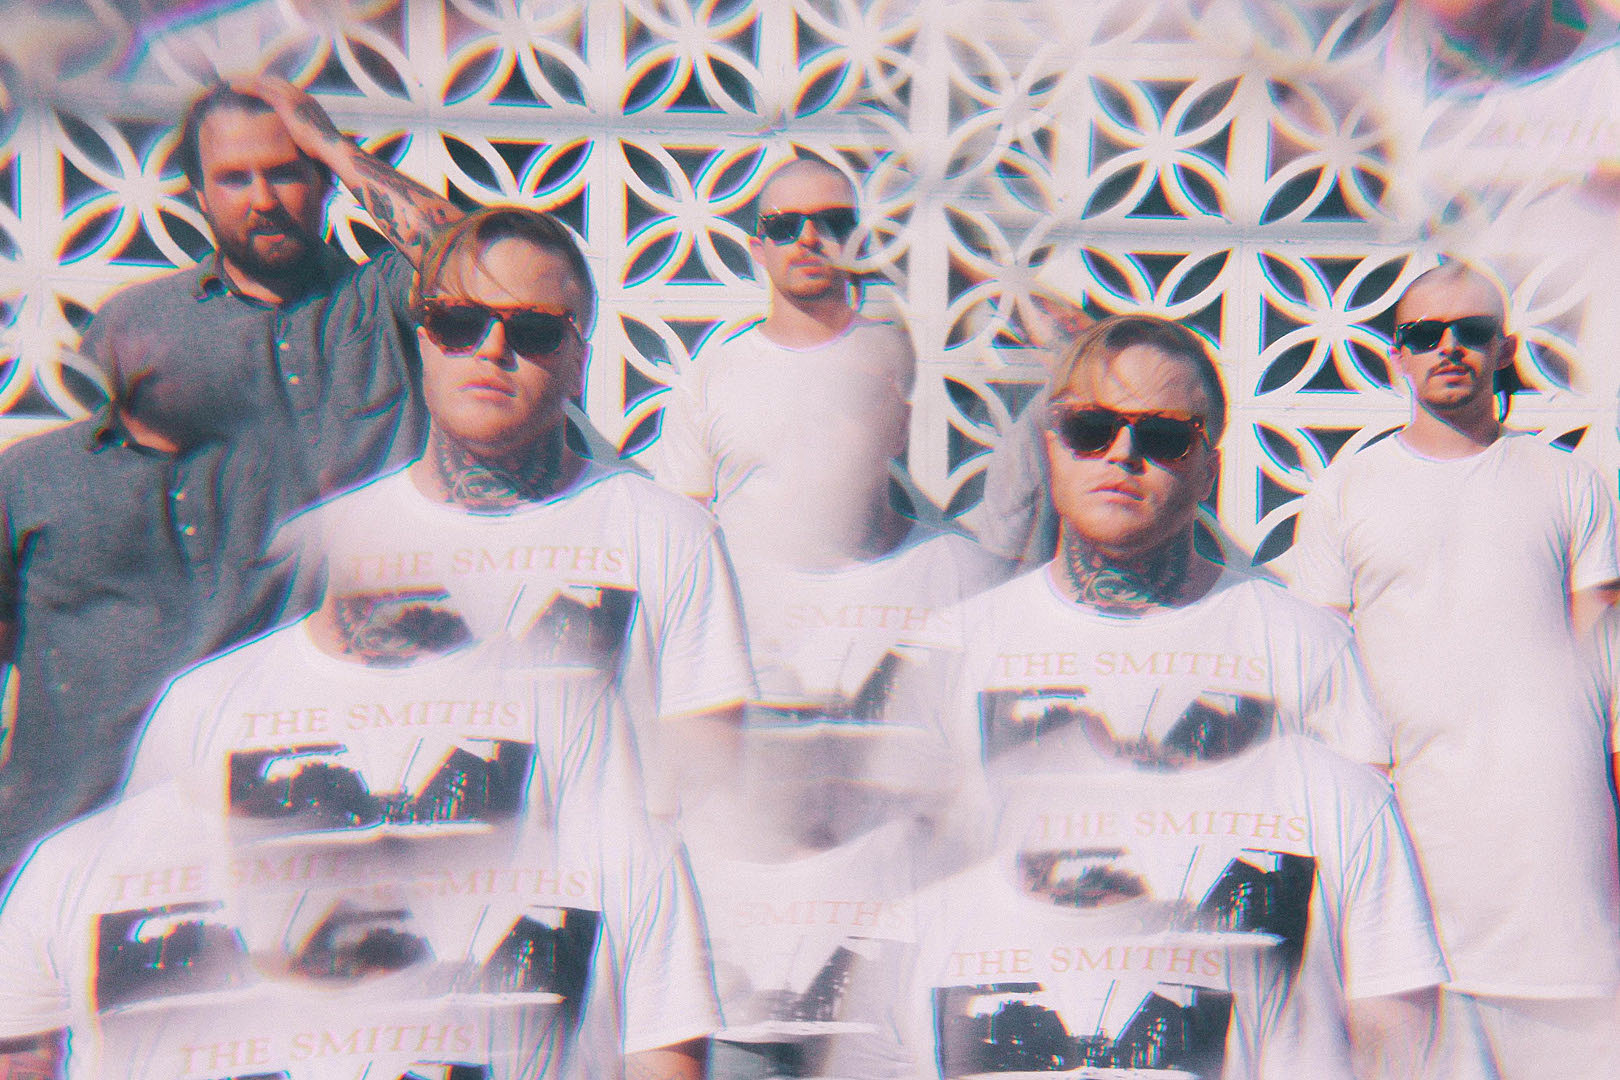 Hundredth Aren't Indifferent on New Single 'Whatever'